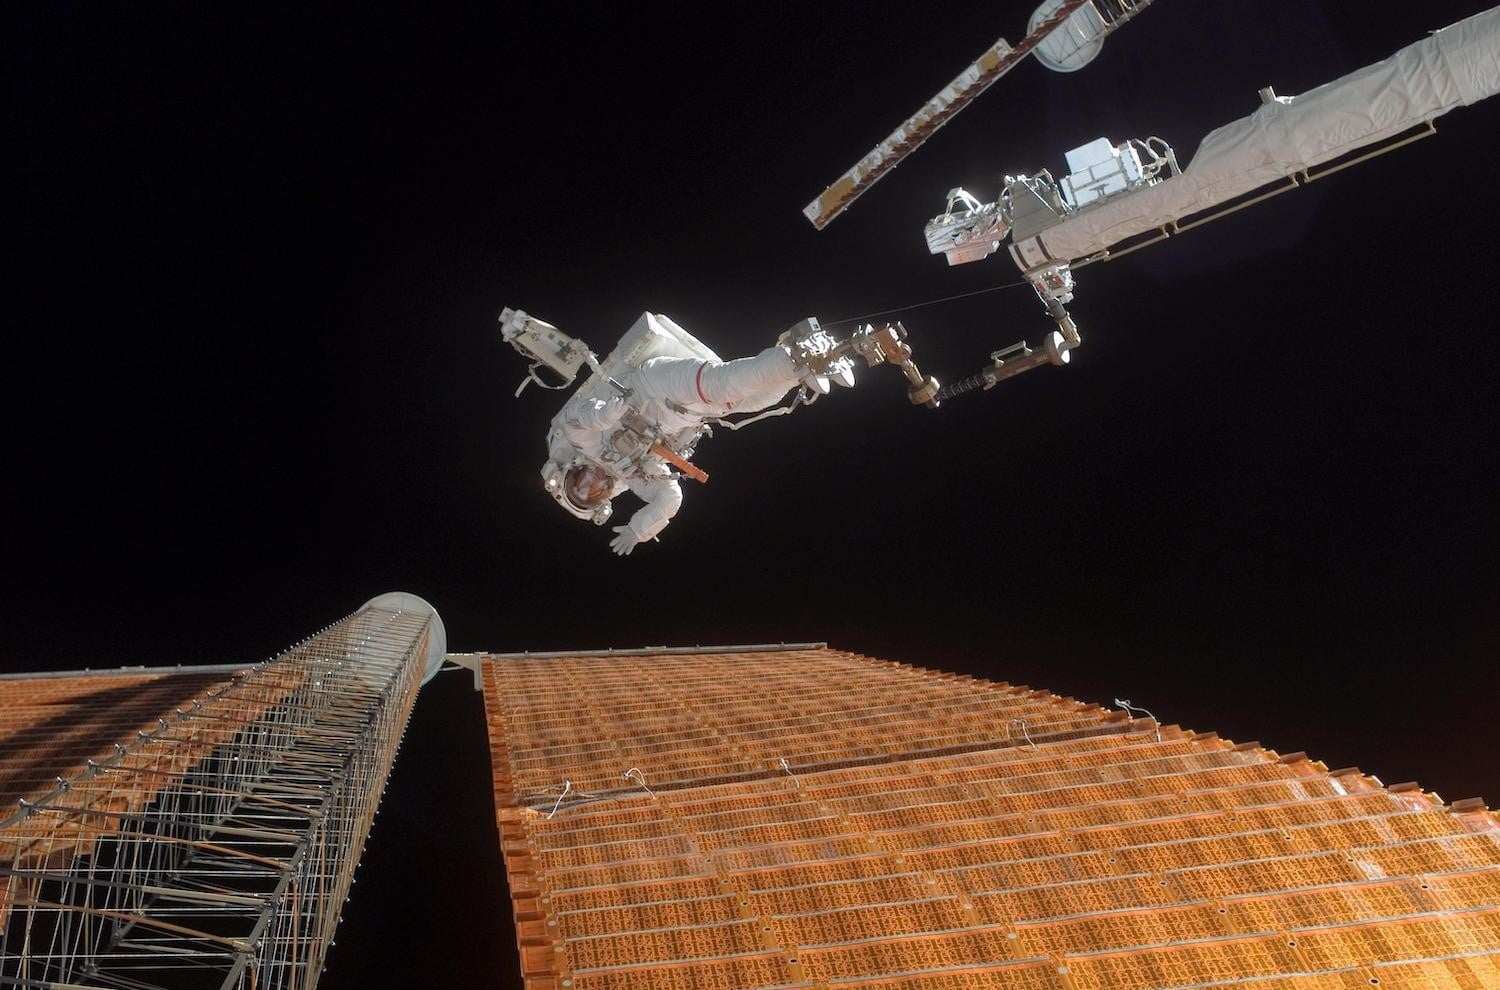 NASA's next spacewalk is on Sunday. Here's how to watch